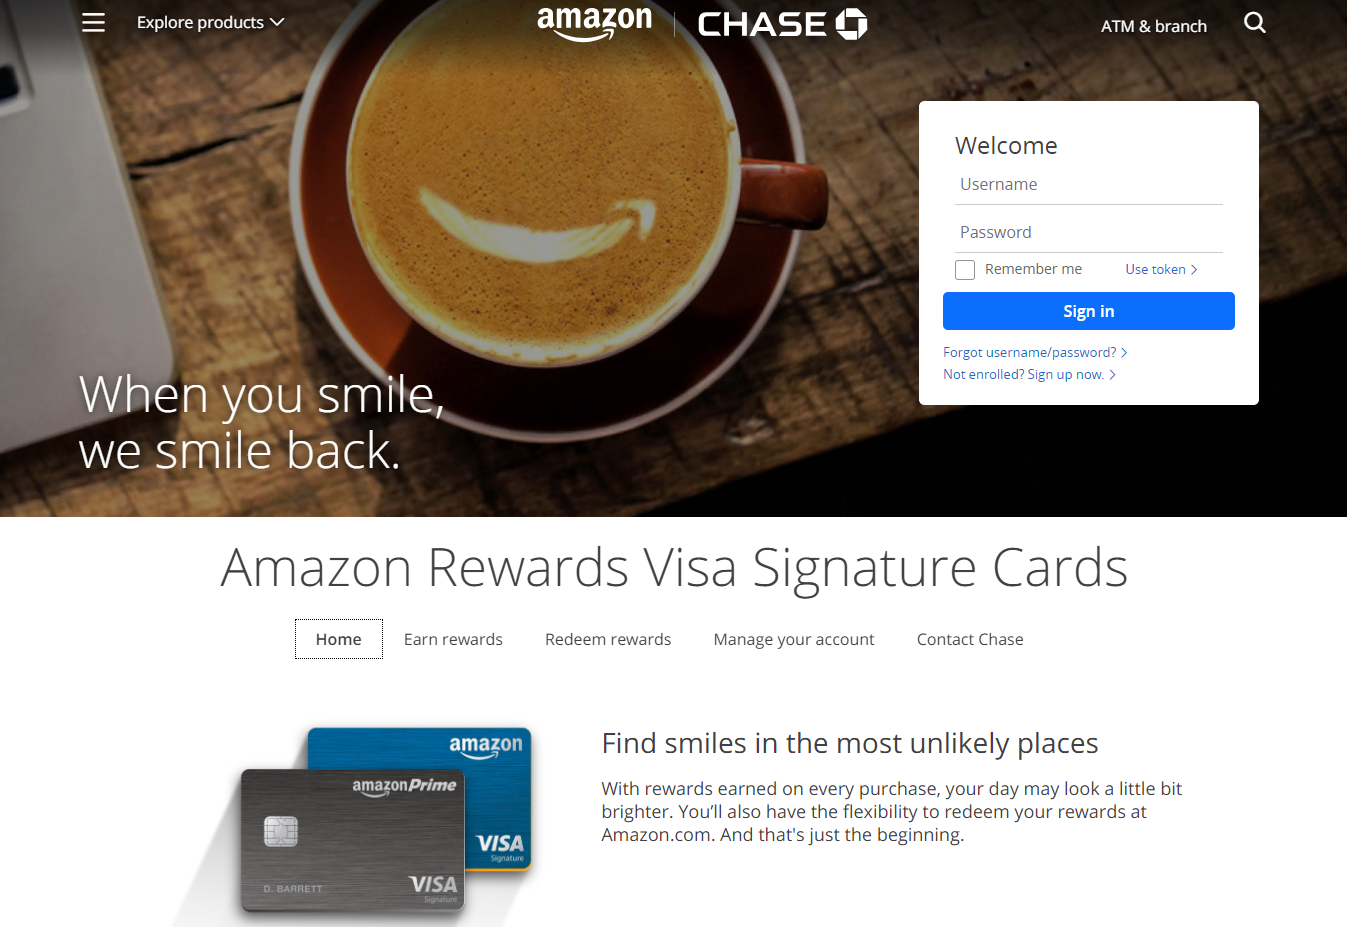 Amazon Rewards Card Credit Cards chase com